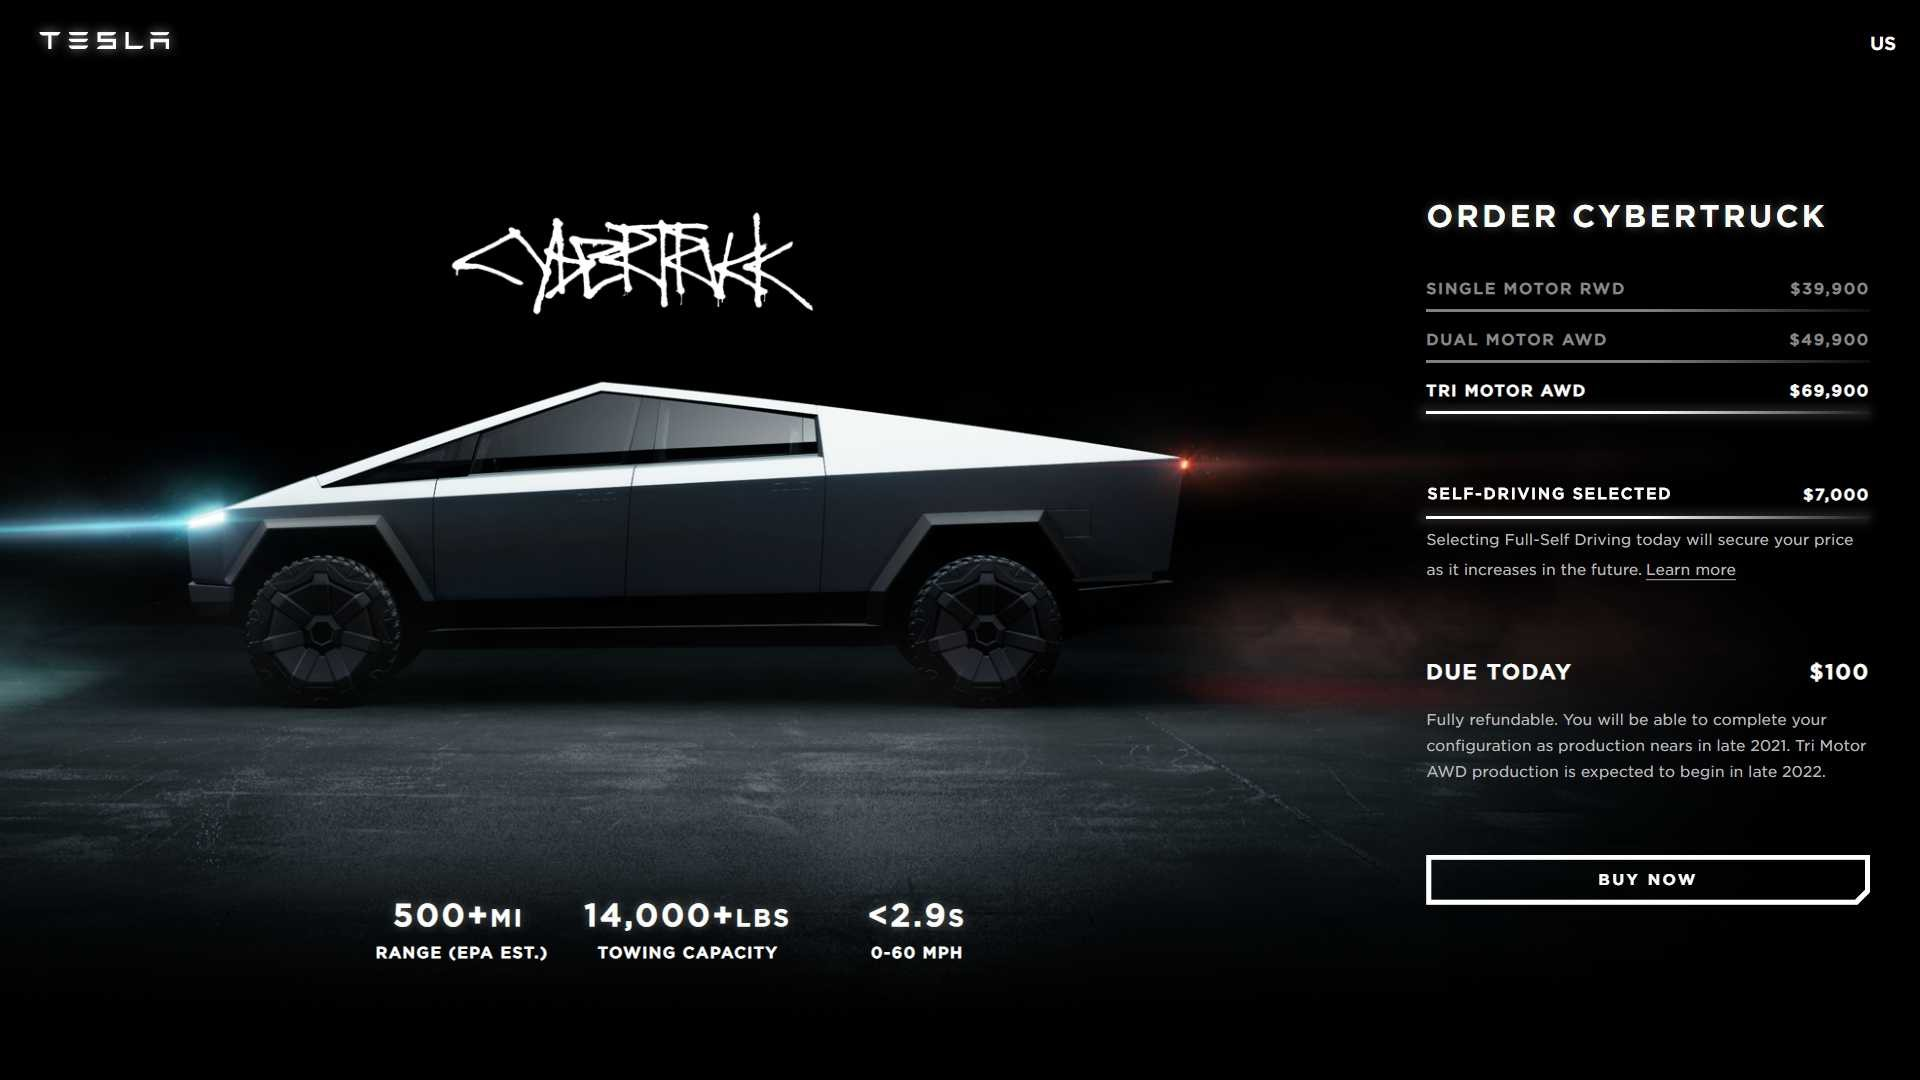 check images of the live presentation of tesla cybertruck